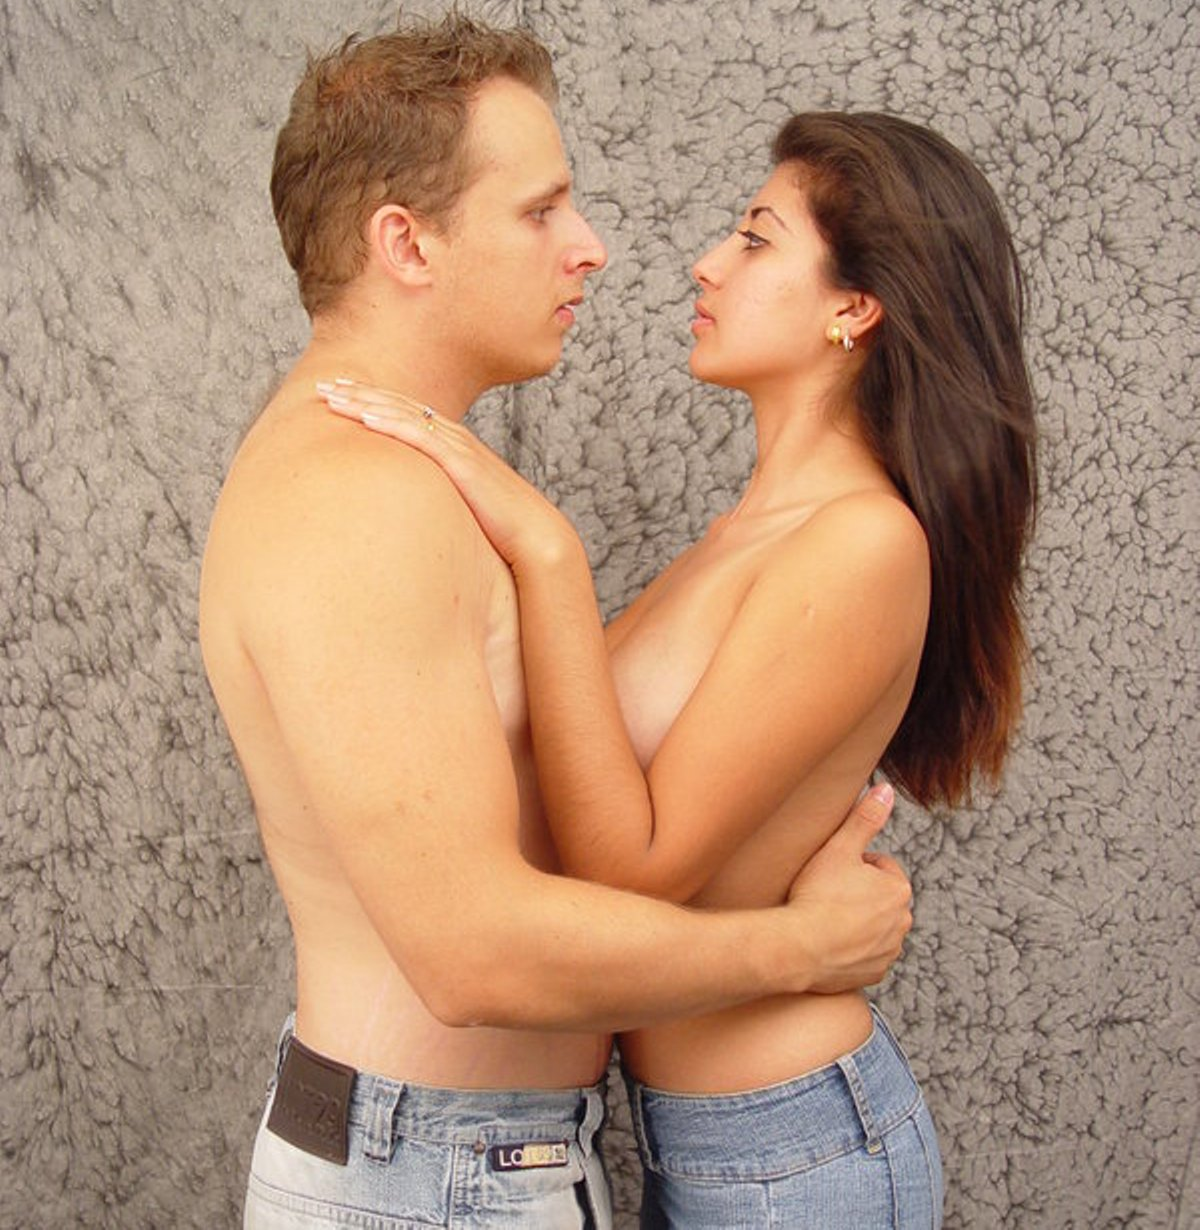 dating for open marriages